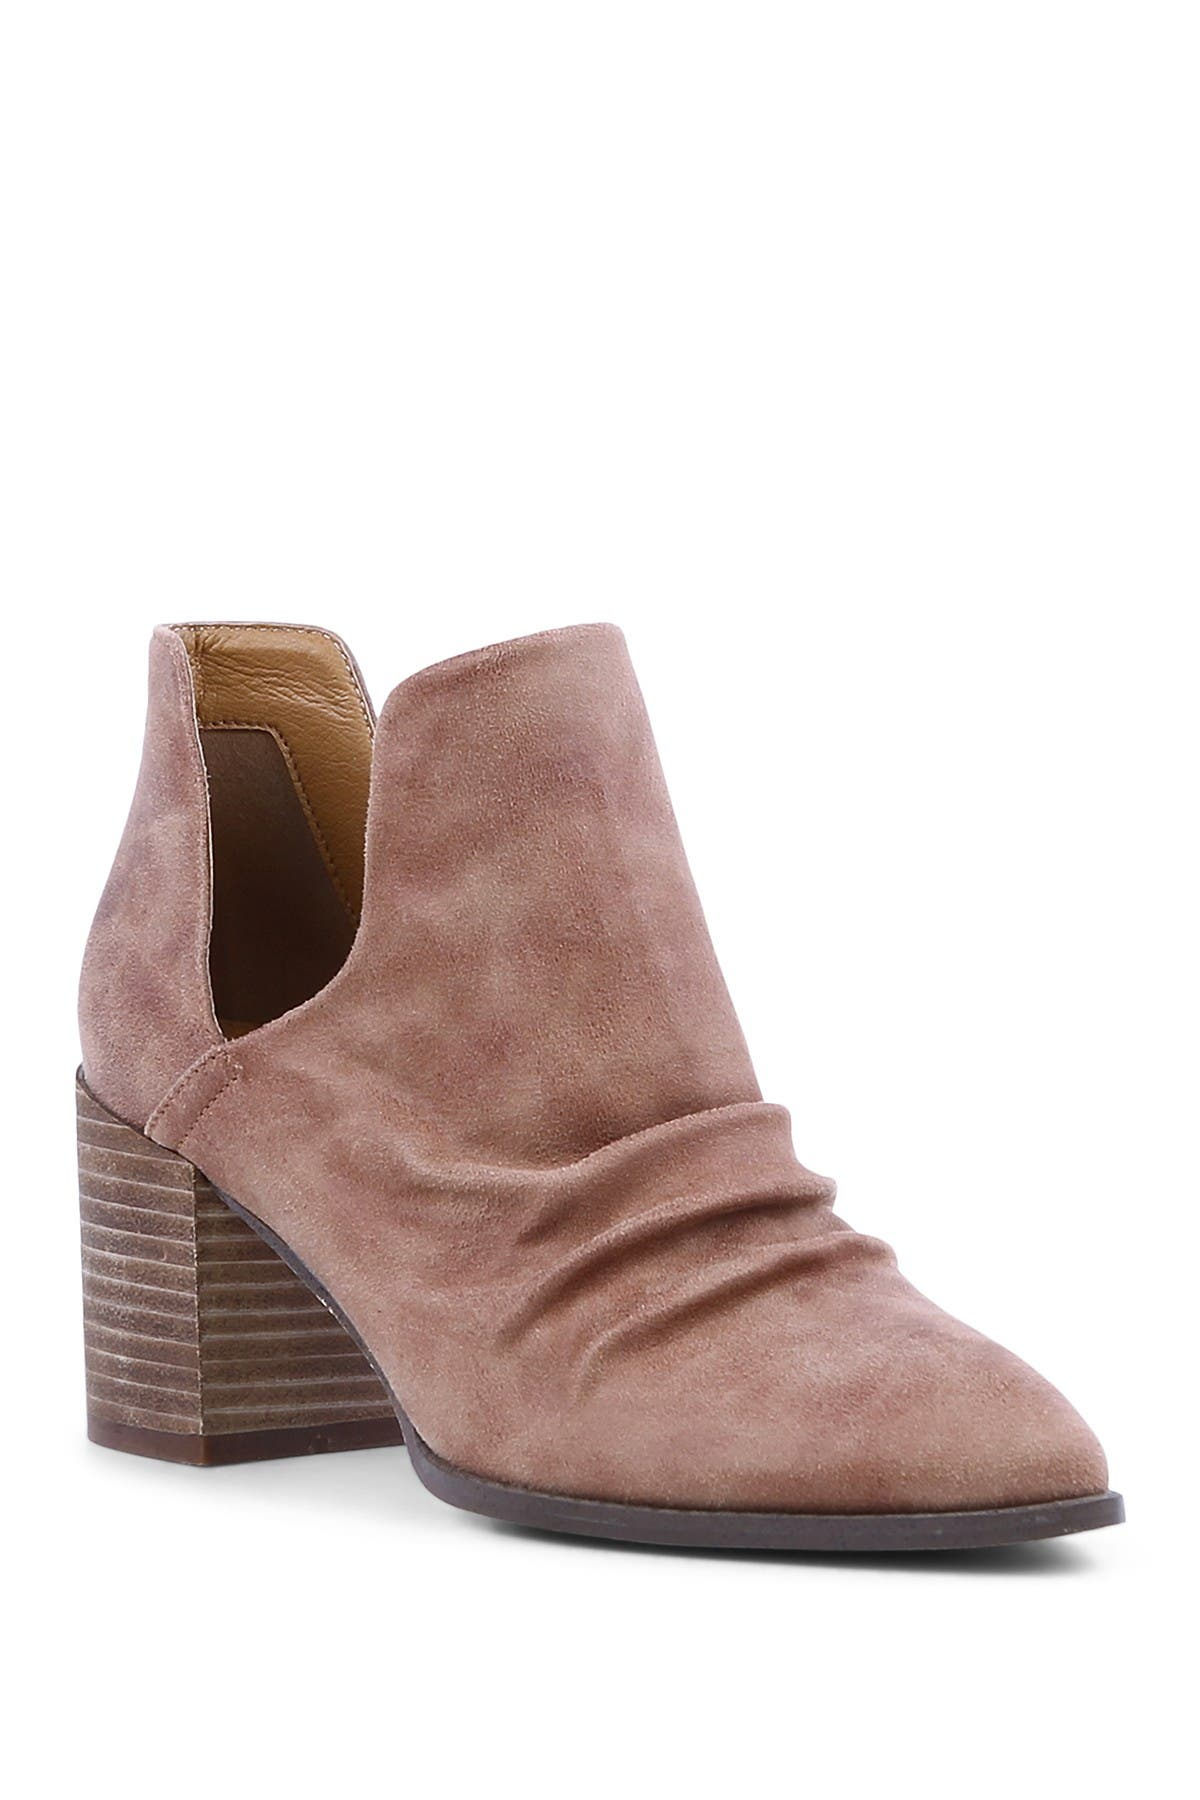 Image of Report Tonya Casual Western Bootie